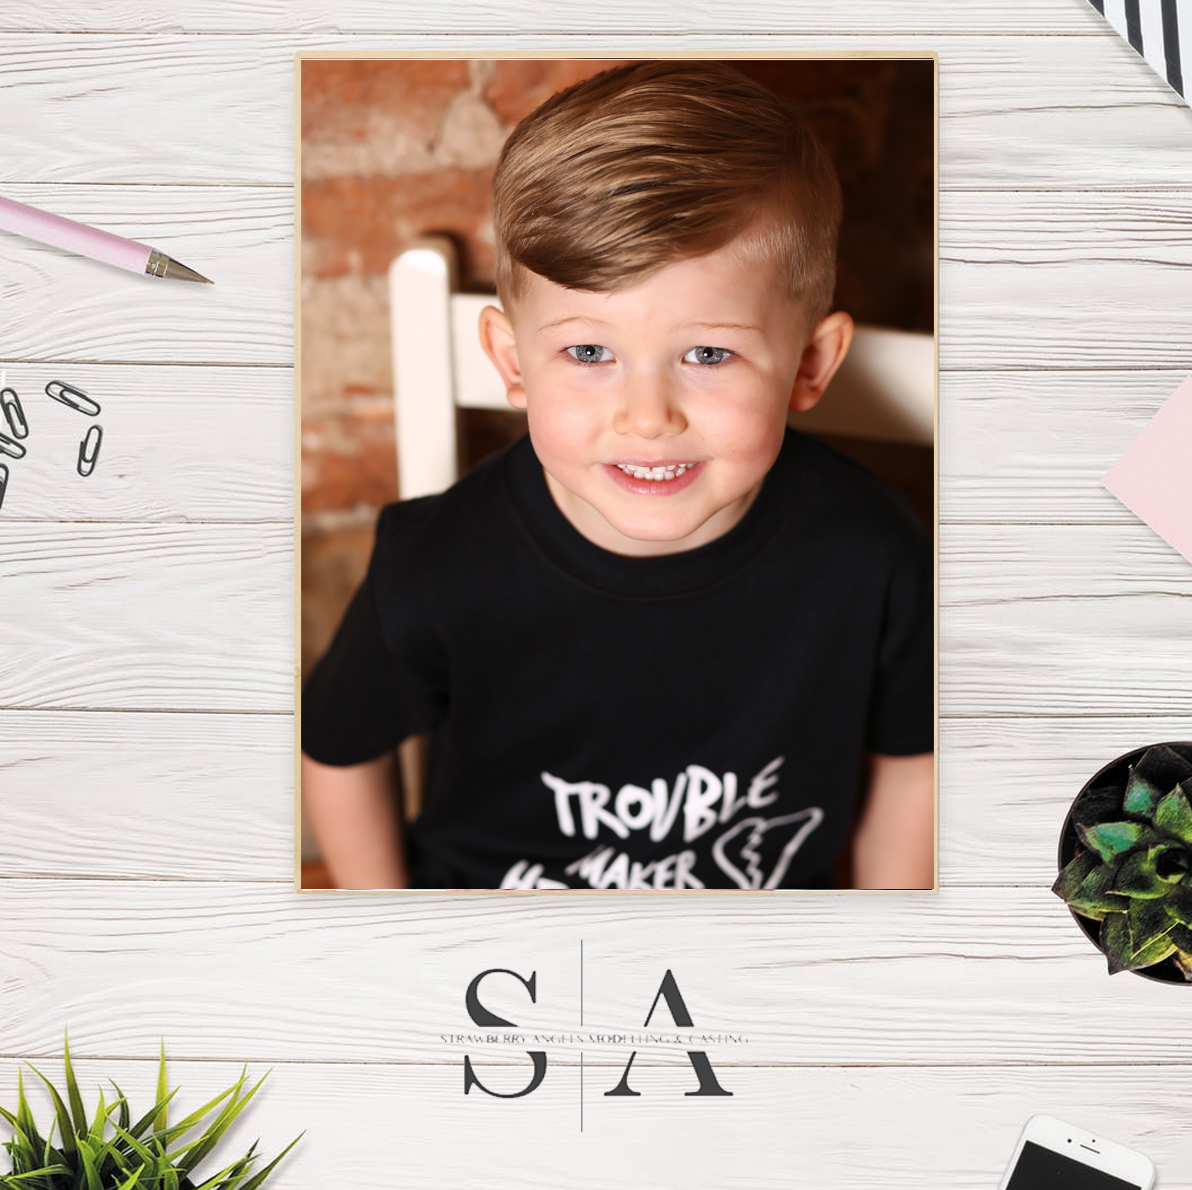 Well done Teddy on being asked to cast for high street store commercial. Good Luck #childmodel #childactor #strawberryangels #modelpic.twitter.com/chQLD0RRjc